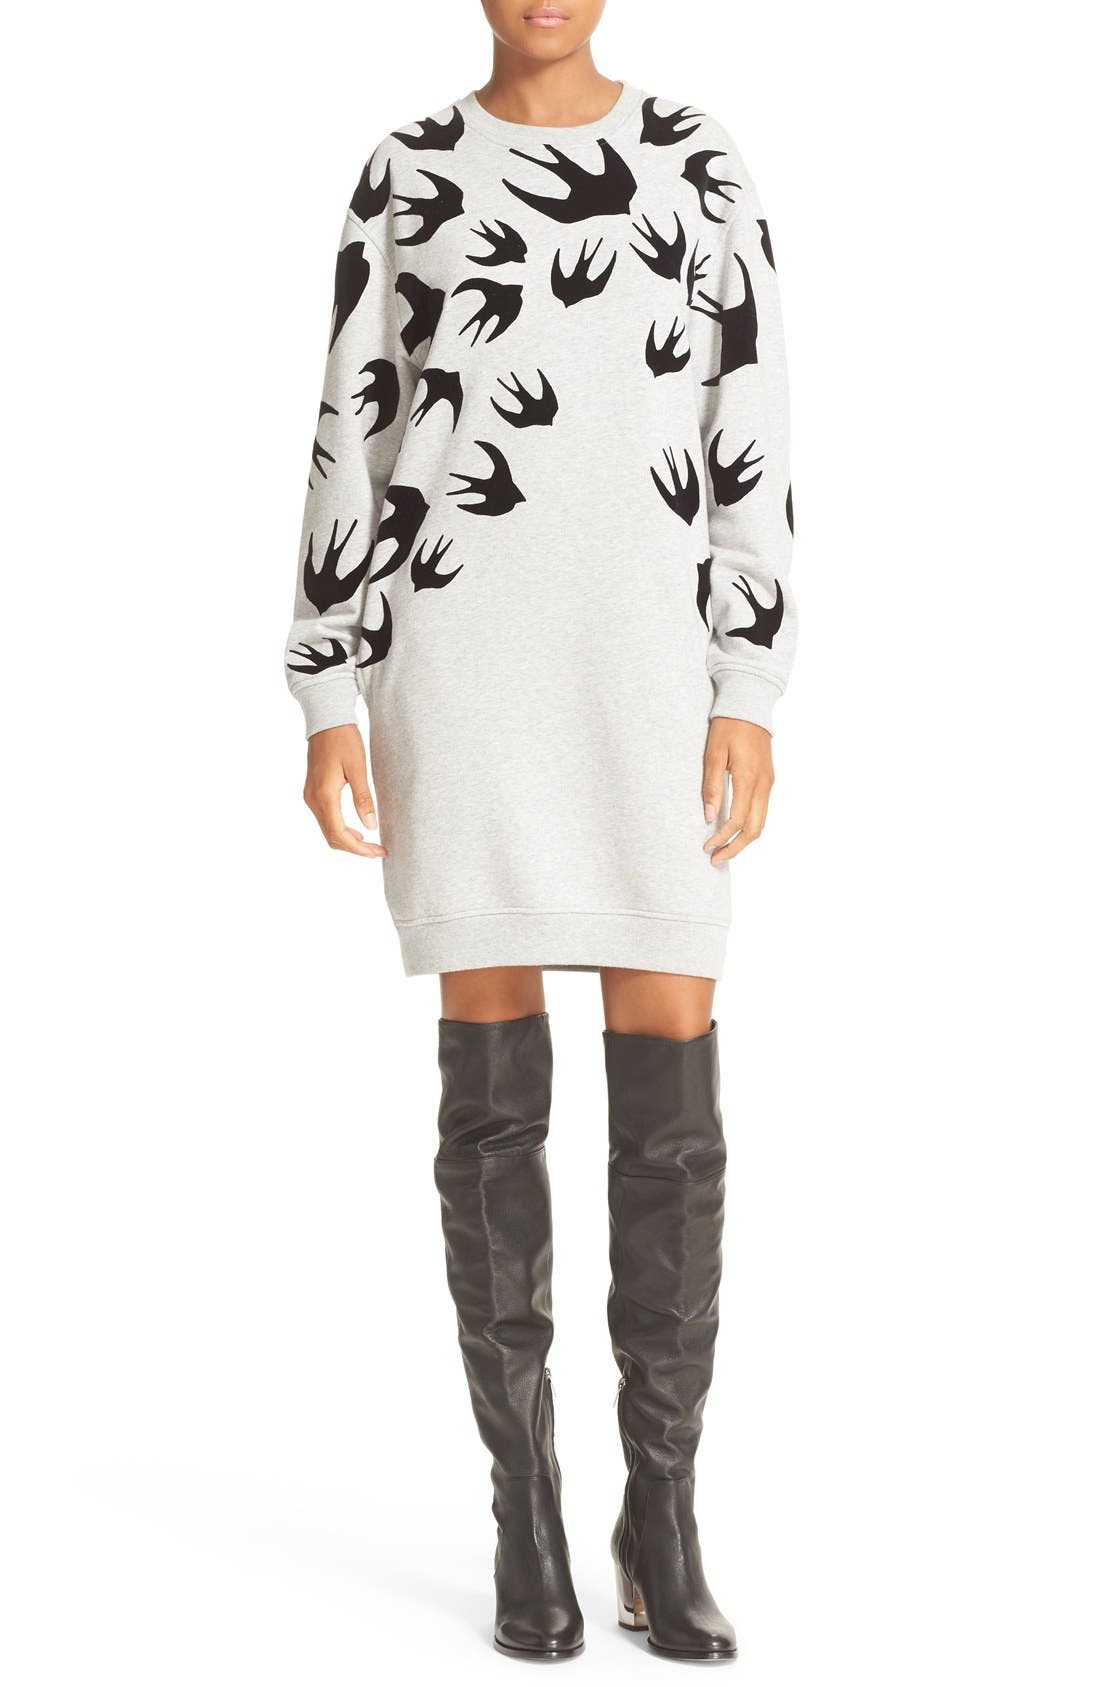 McQ Alexander McQueen Flocked Swallow Classic Sweatshirt Dress